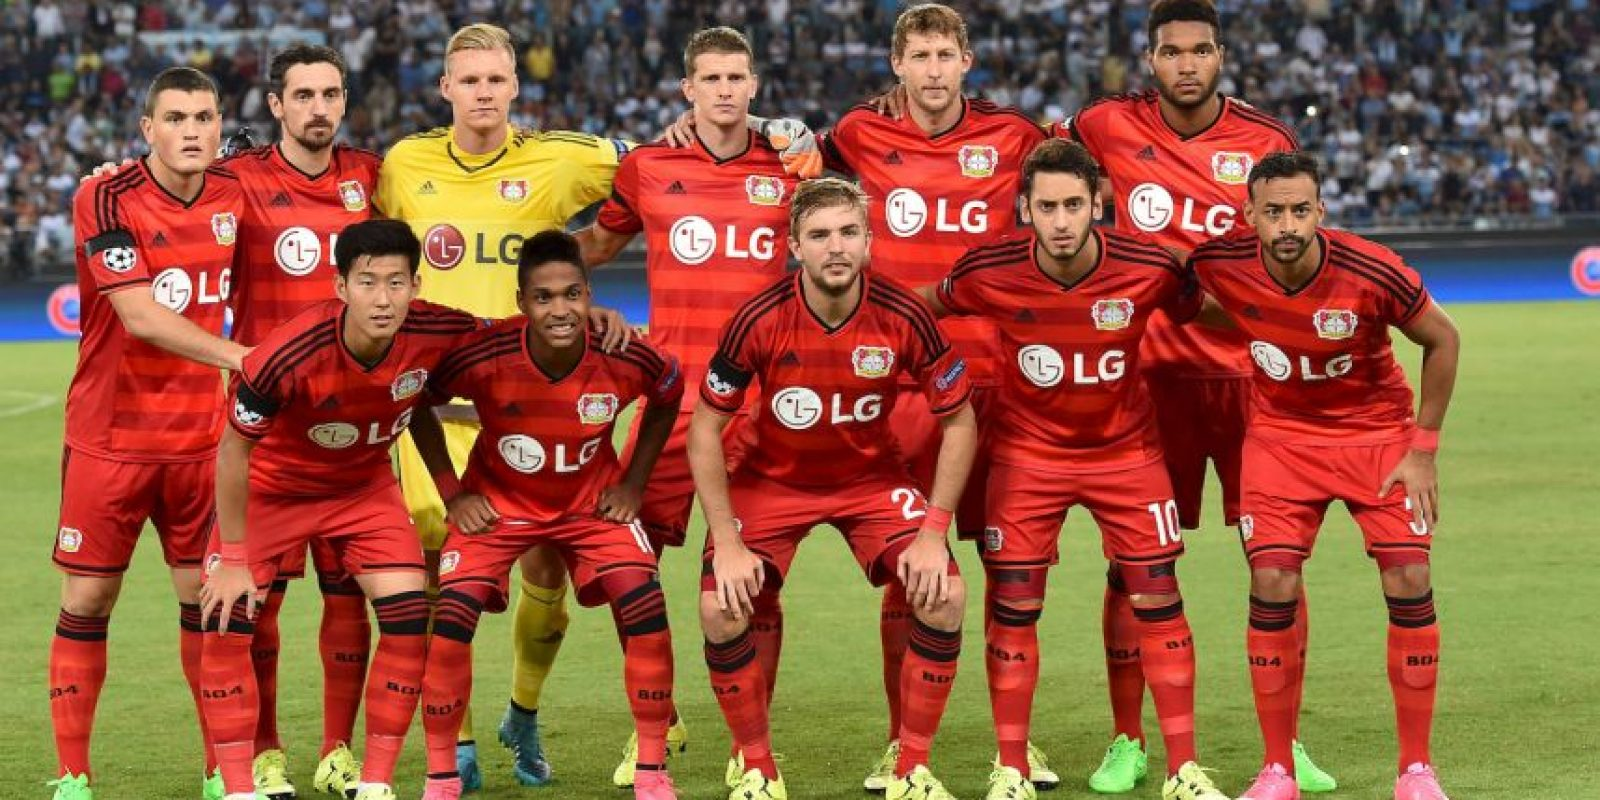 Bayer Leverkusen vs. Roma en Bay Arena, Leverkusen. Foto: Getty Images